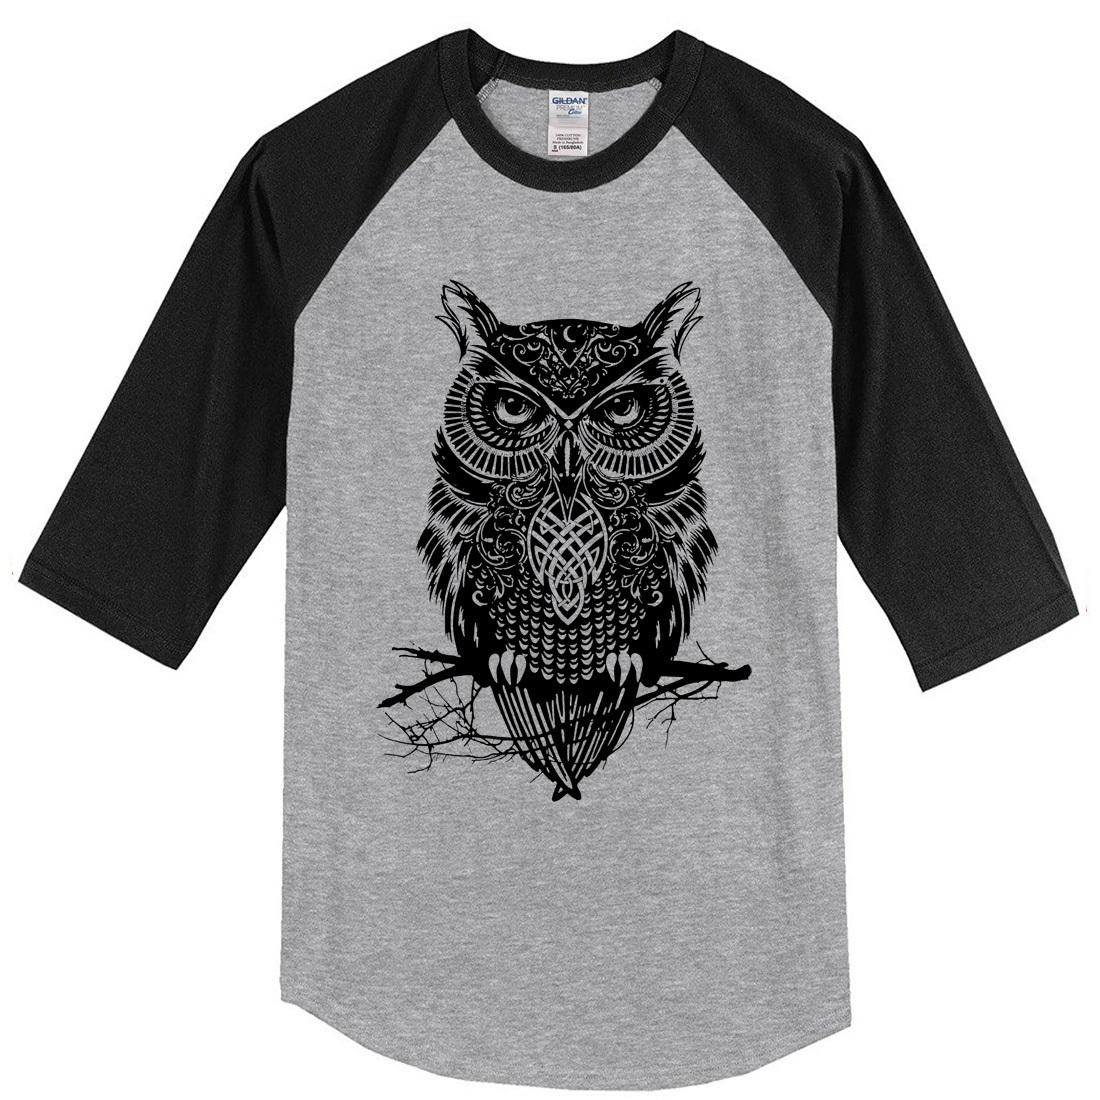 d0274710 2019 Summer Men'S T Shirts Three Quarter Sleeve Owl Casual Men'S Sportswear  Raglan T Shirt Brand Clothing Tops Crossfit T Shirt Online T Shirt Printing  On T ...